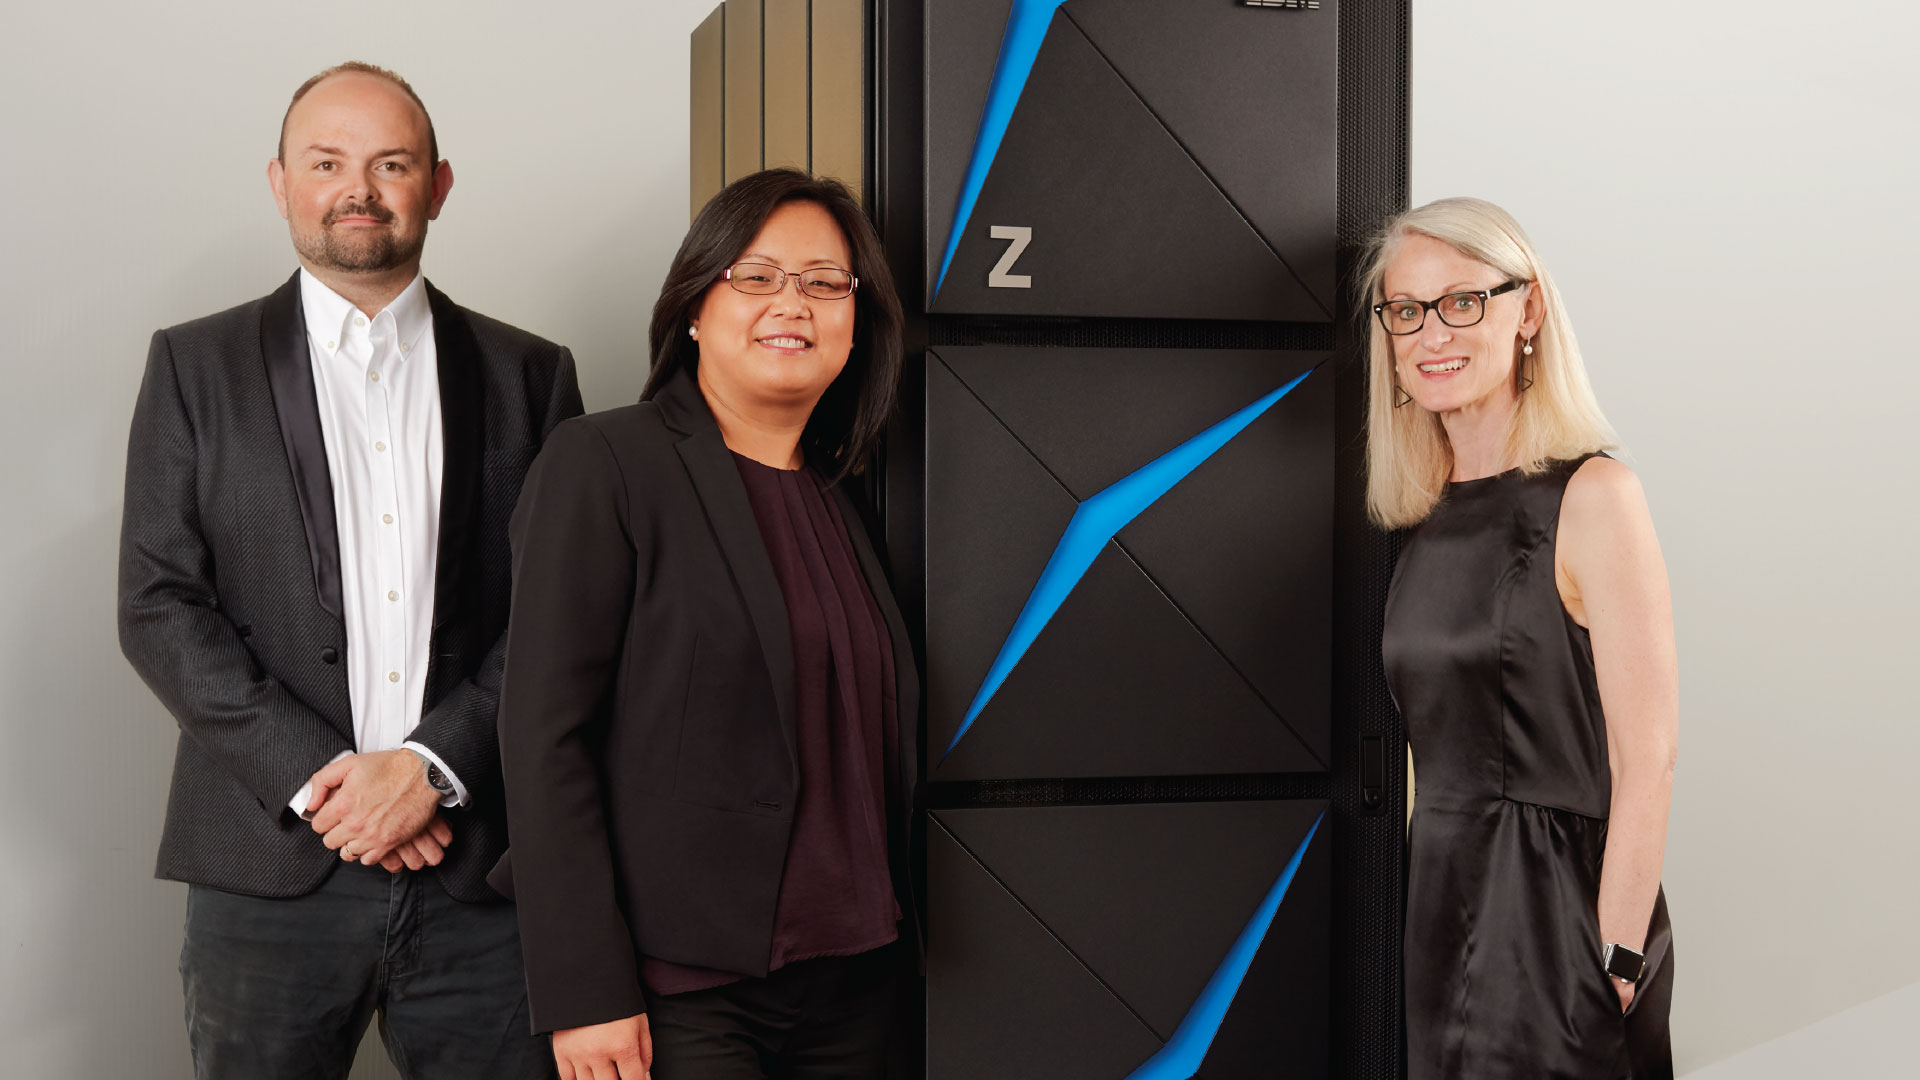 IBM Z Offering Manager Matt Whitbourne, IBM Z Product Manager Miao Zhang-Cohen and IBM Z Design Lead Kirsten McDonald pose with the new z15.